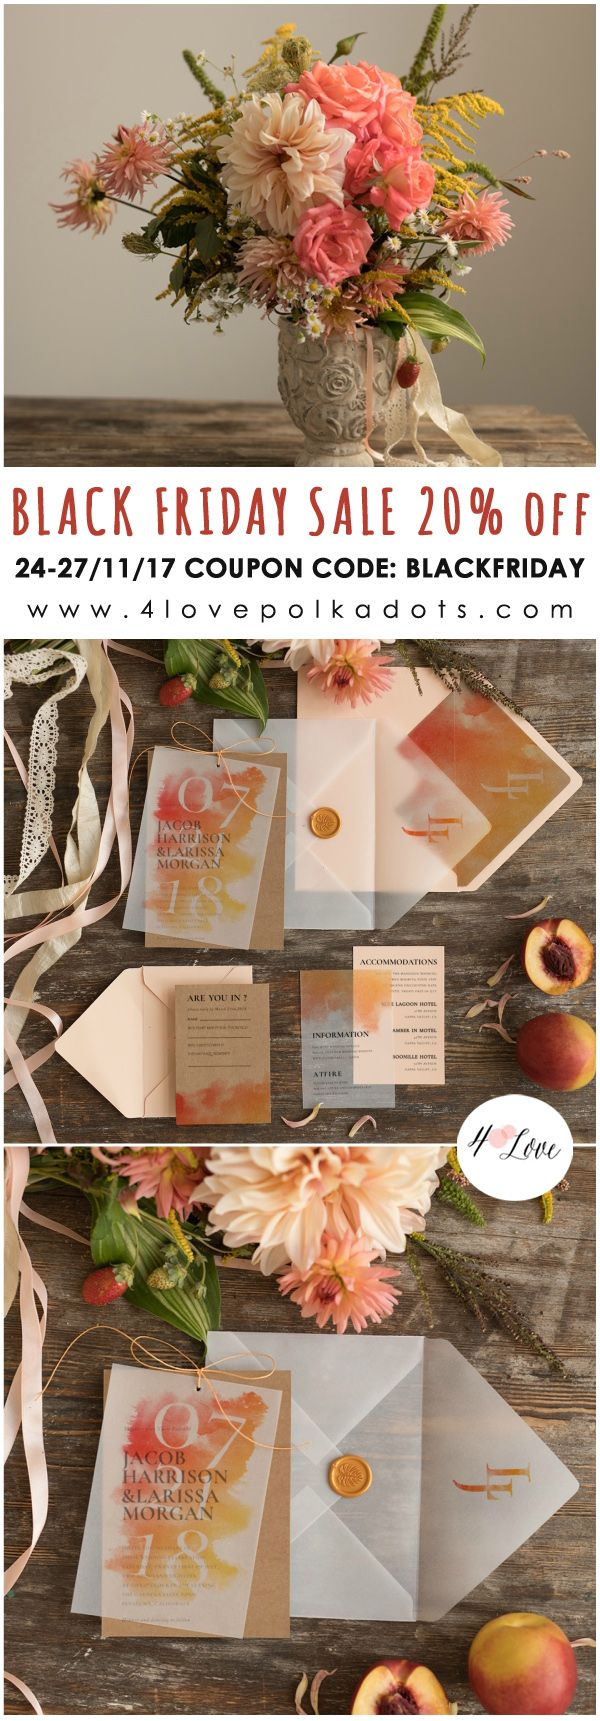 Planning a wedding? Don't miss our Black Friday SALE 20% off everything Wedding Invitations, Save the Dates, Wedding Guest books and more. Rustic, Boho or Beach theme - all stationery and accessories to match! Shop with coupon:blackfriday from 24-27/11/17  #blackfriday #weddingideas